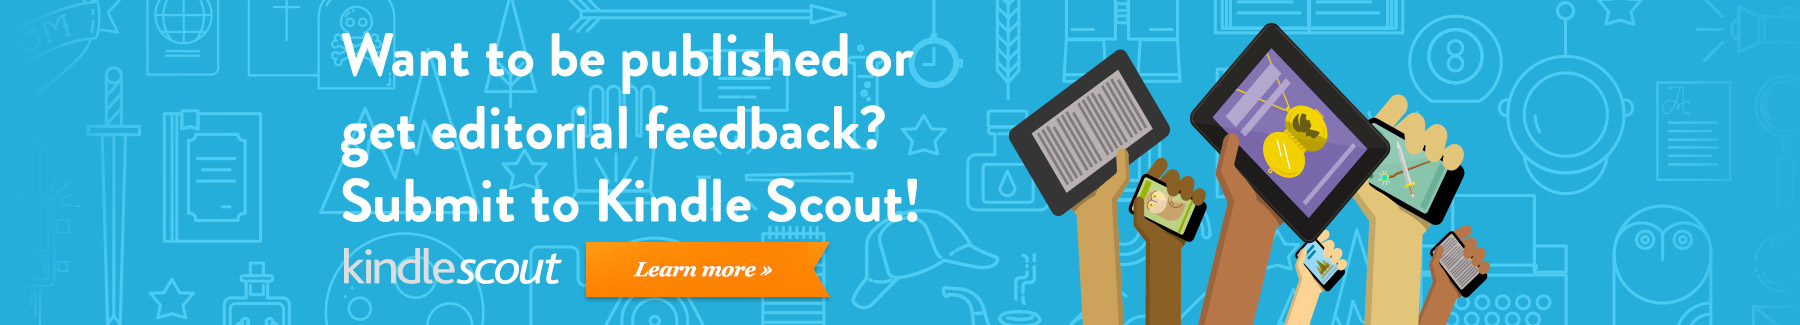 Want to be published or get editorial feedback? Submit to Kindle Scout!